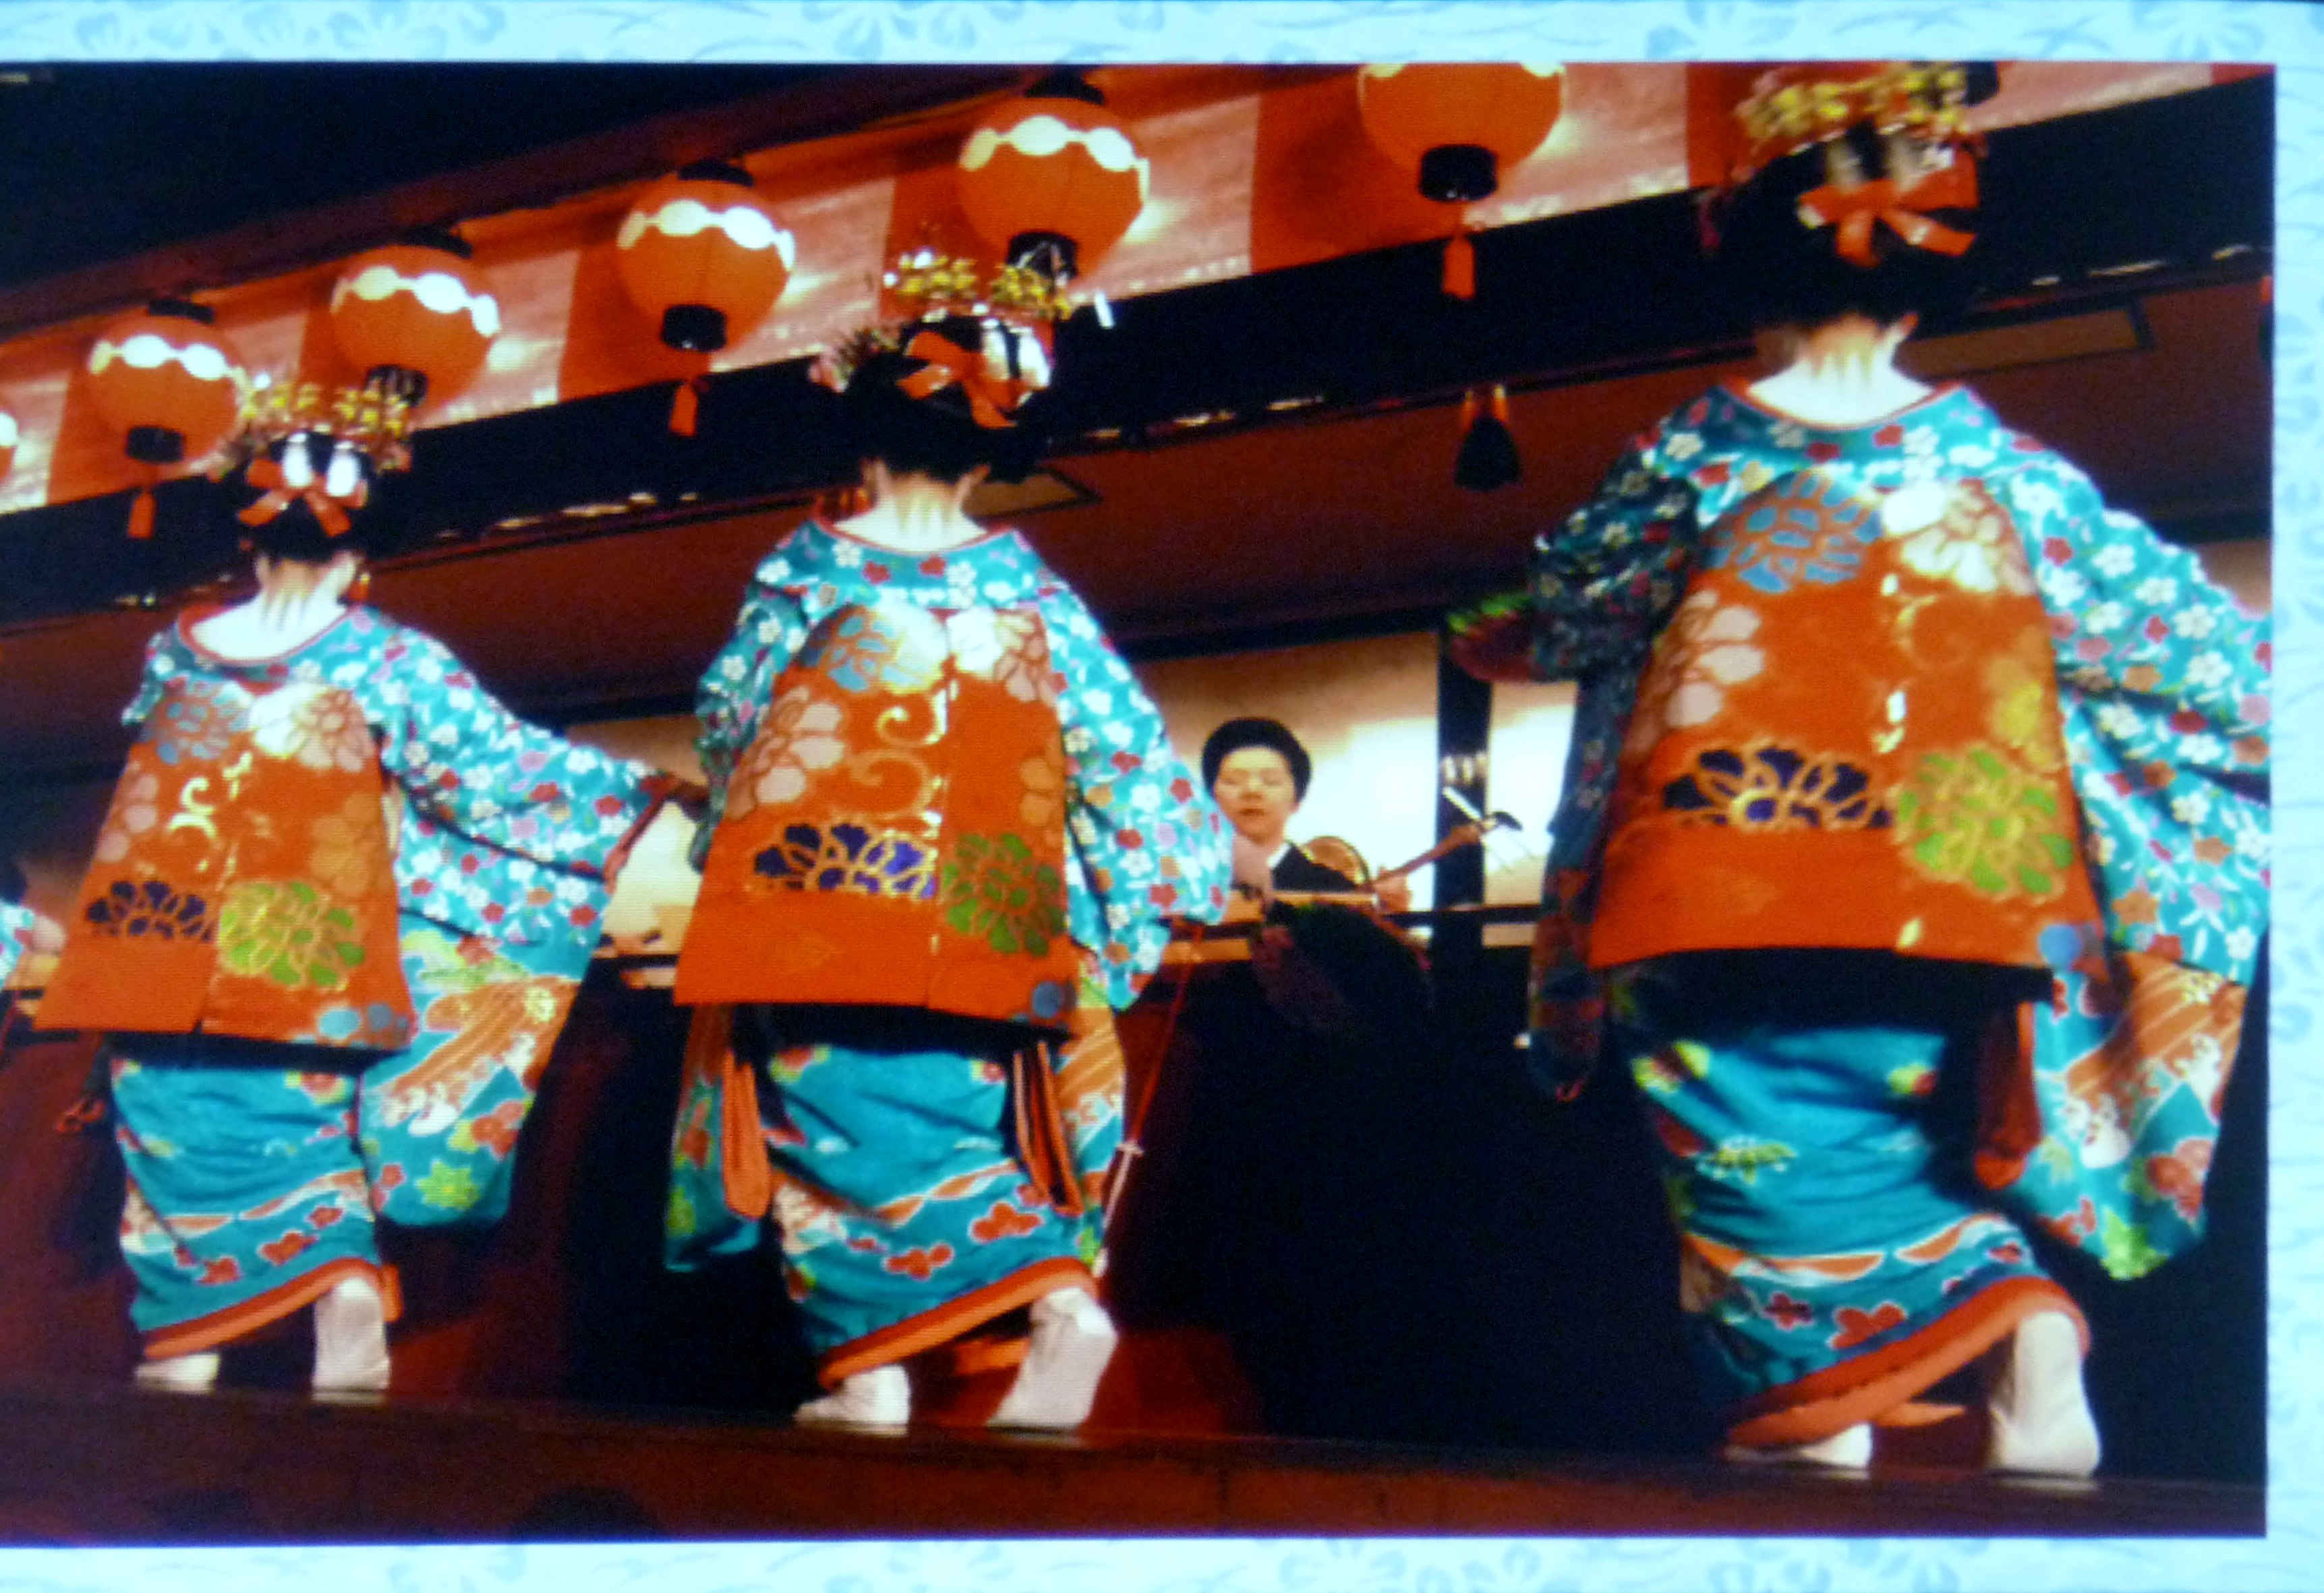 Katie Chaplin slide showing apprentice geishas wearing kimono at a Tea Ceremony